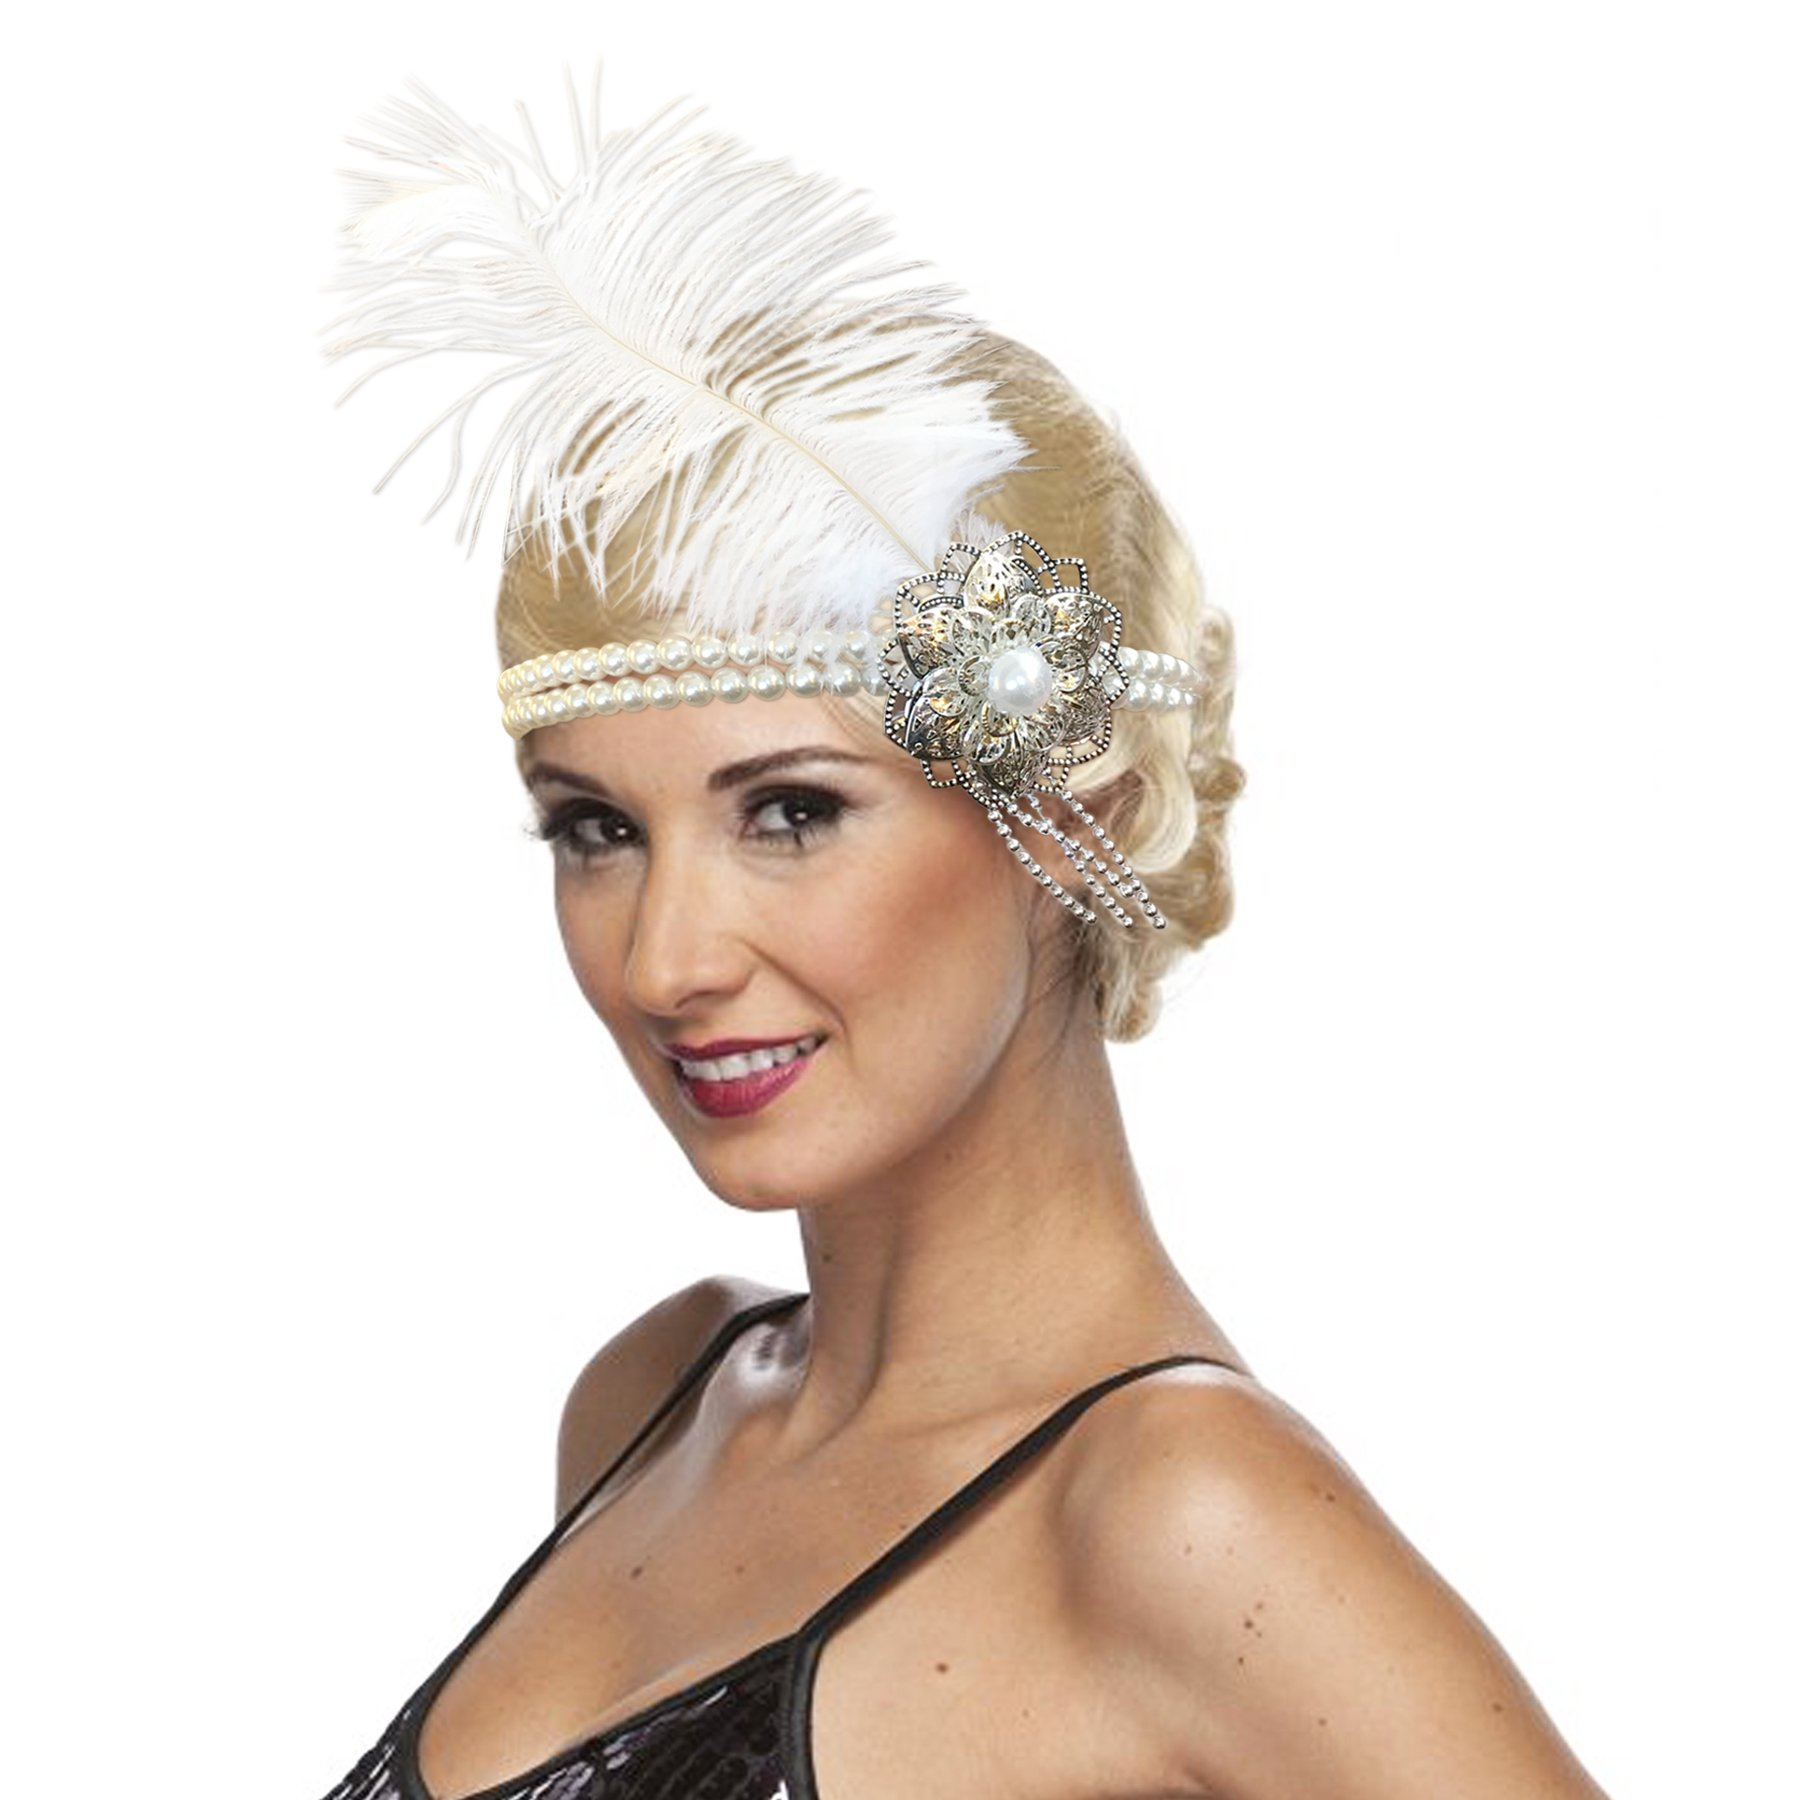 Silver and White Pearl Feather Flapper Headpiece Vintage Style 1920s Headband